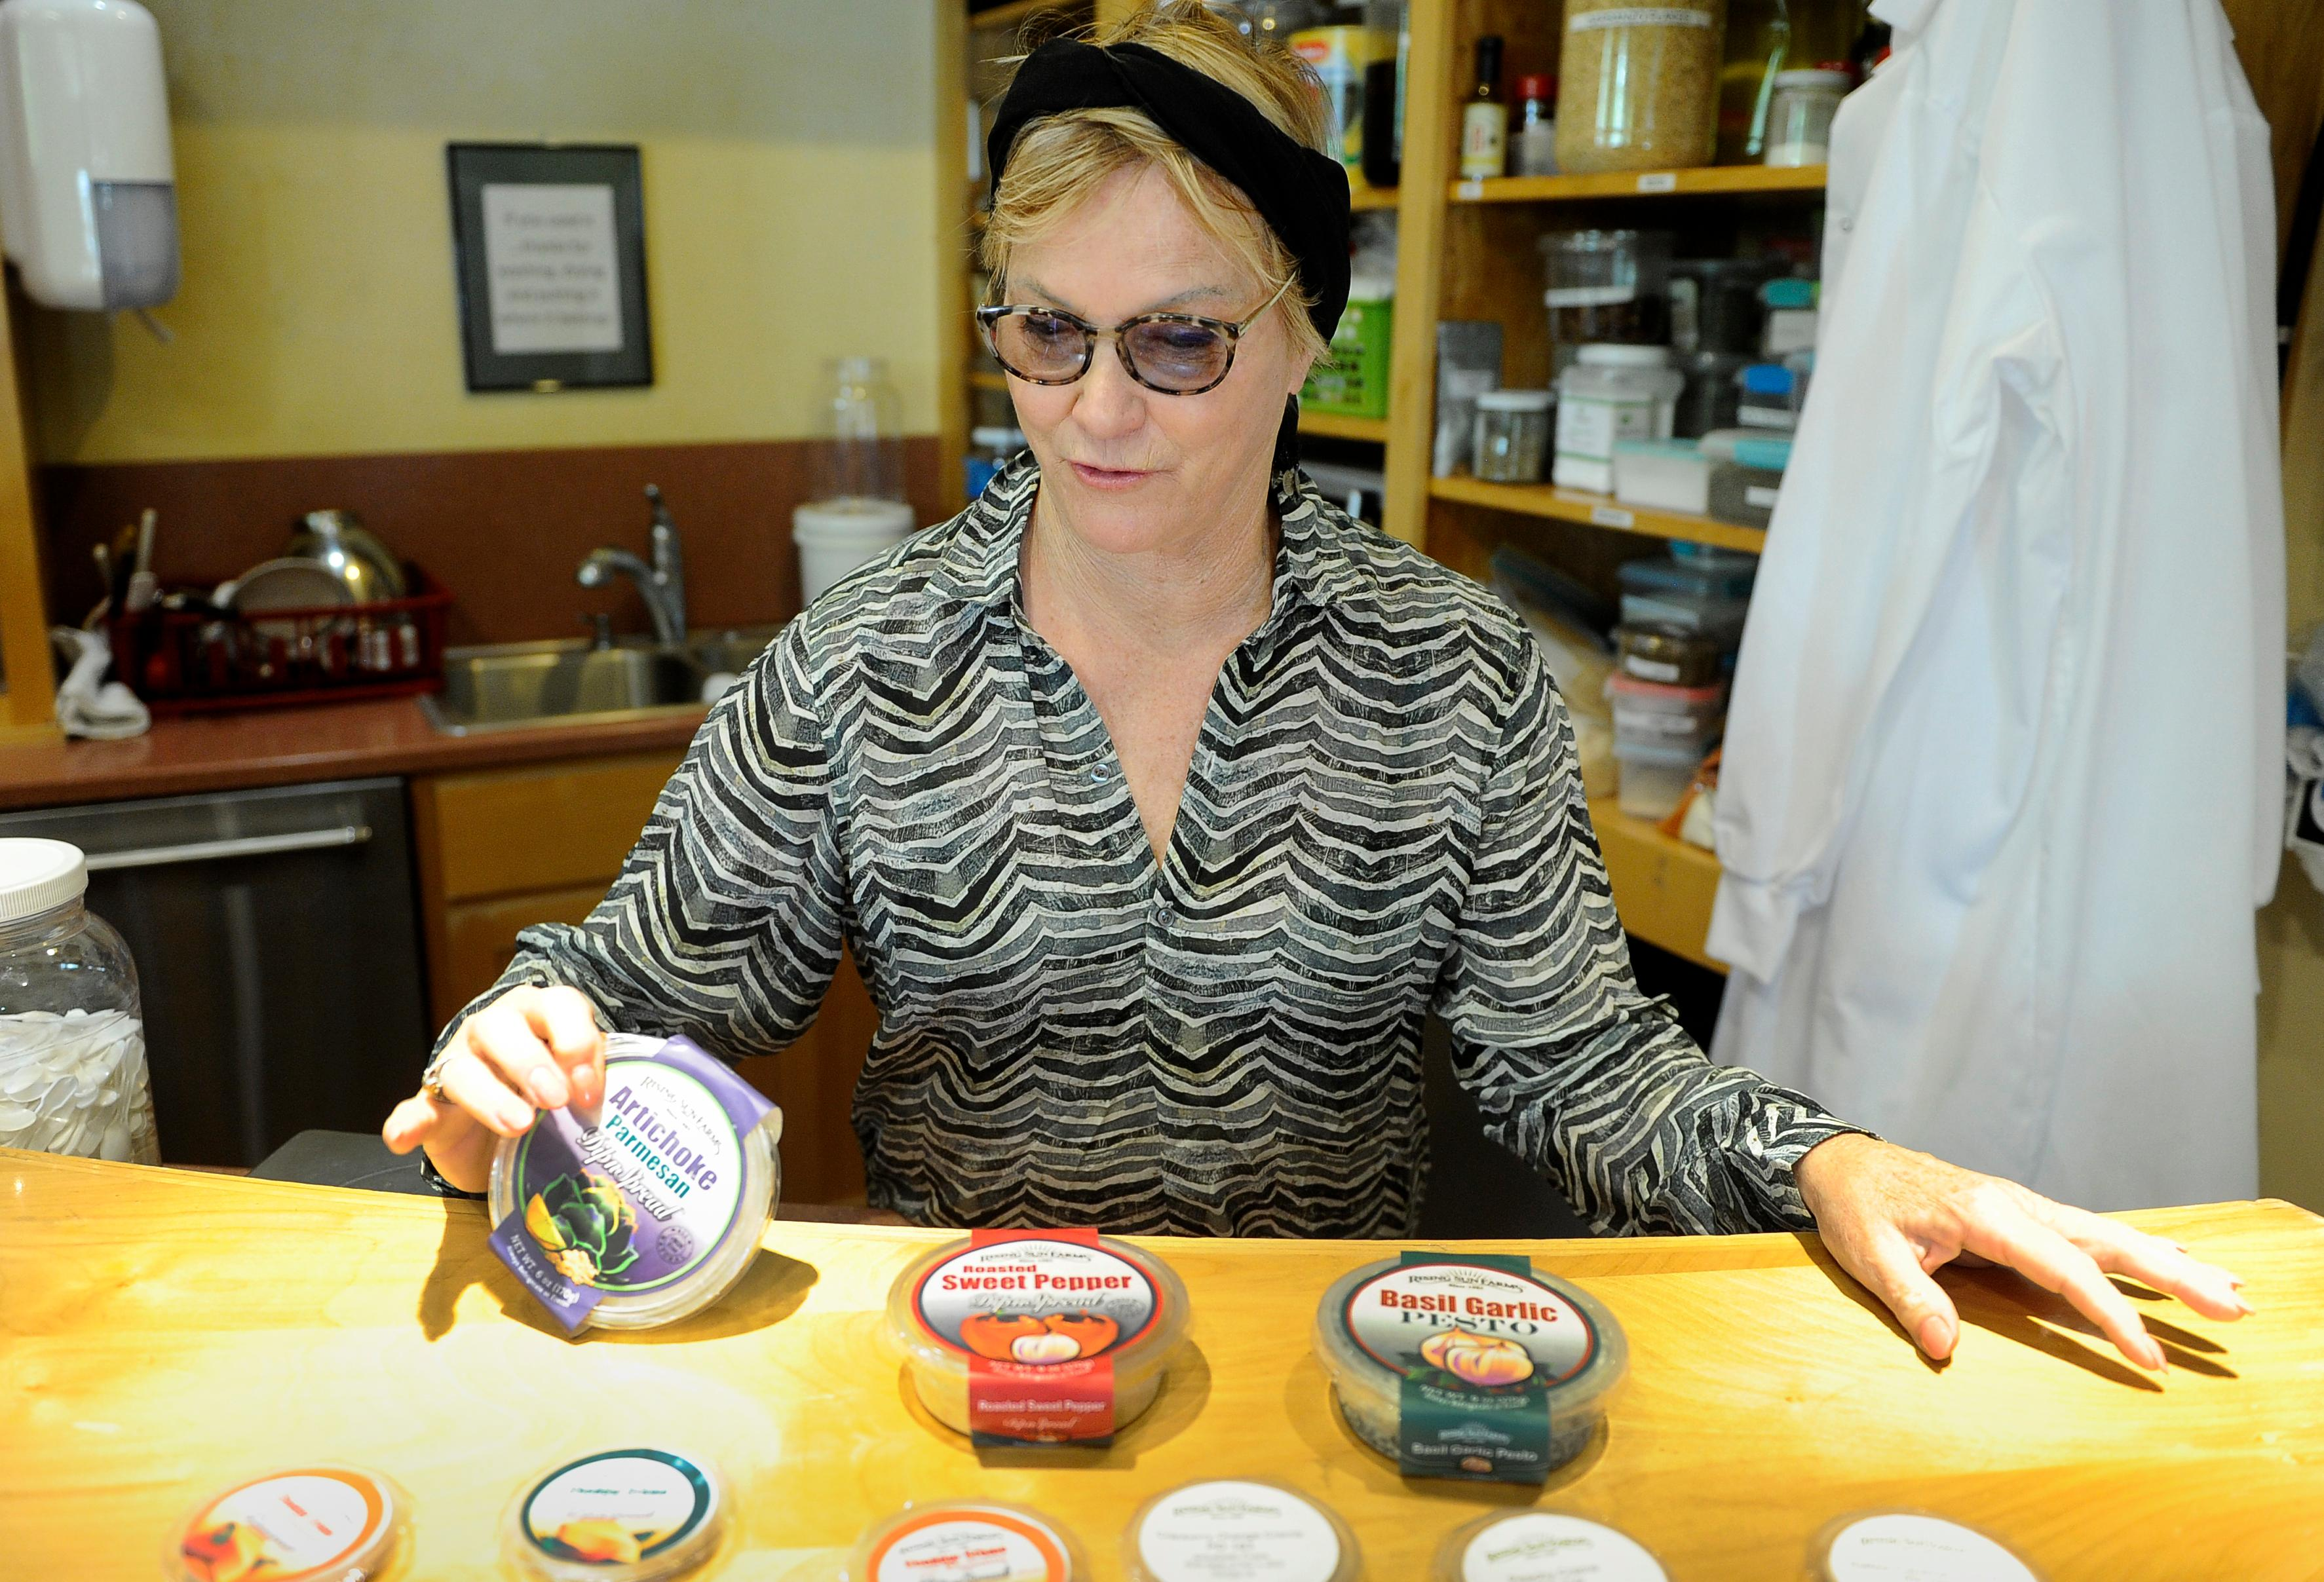 Andy Atkinson / Mail TribuneElizabeth Fujas says the Artichoke-Parmesan Dip'nSpread is one of her favorites along with other products at Rising Sun Farms in Phoenix.